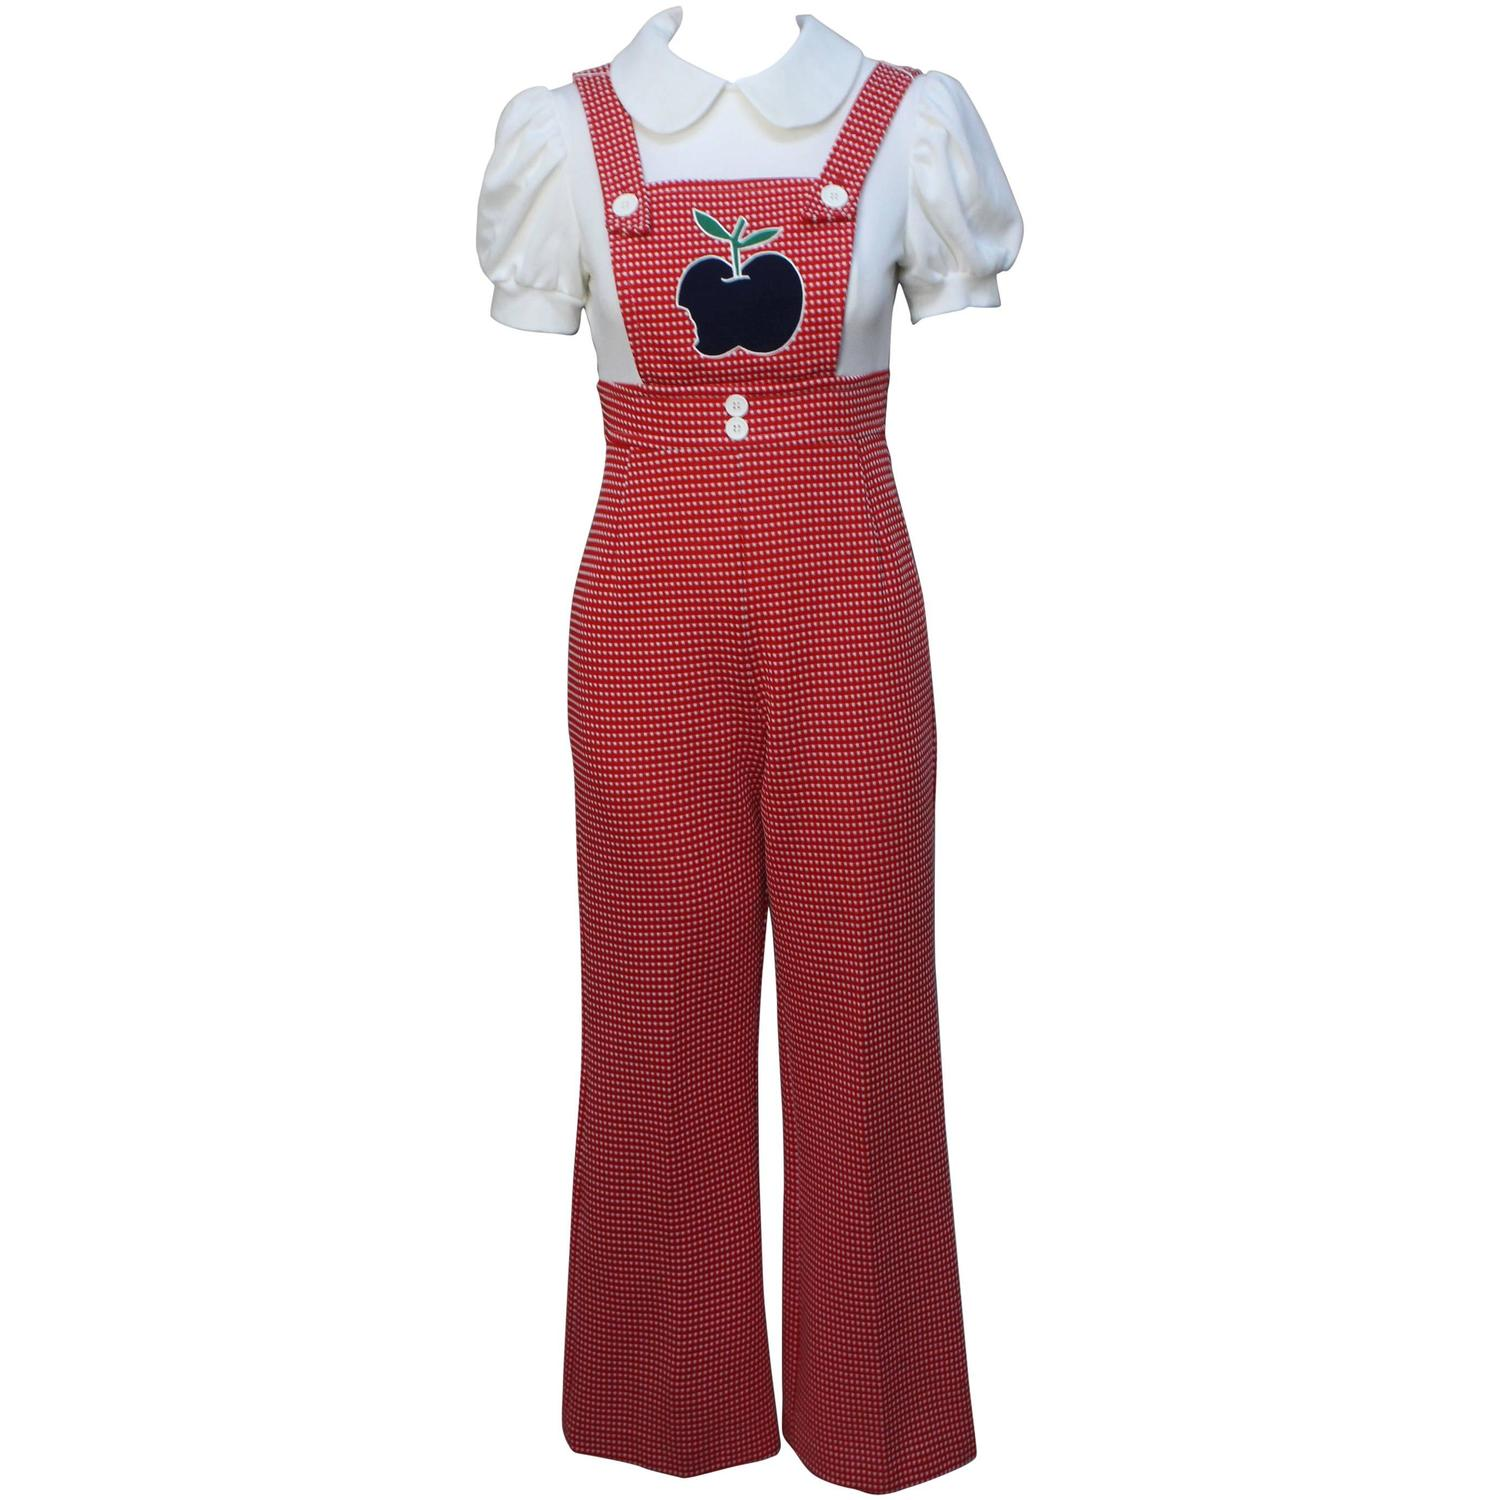 1960s Mod Applique Overall Jumpsuit For Sale At 1stdibs